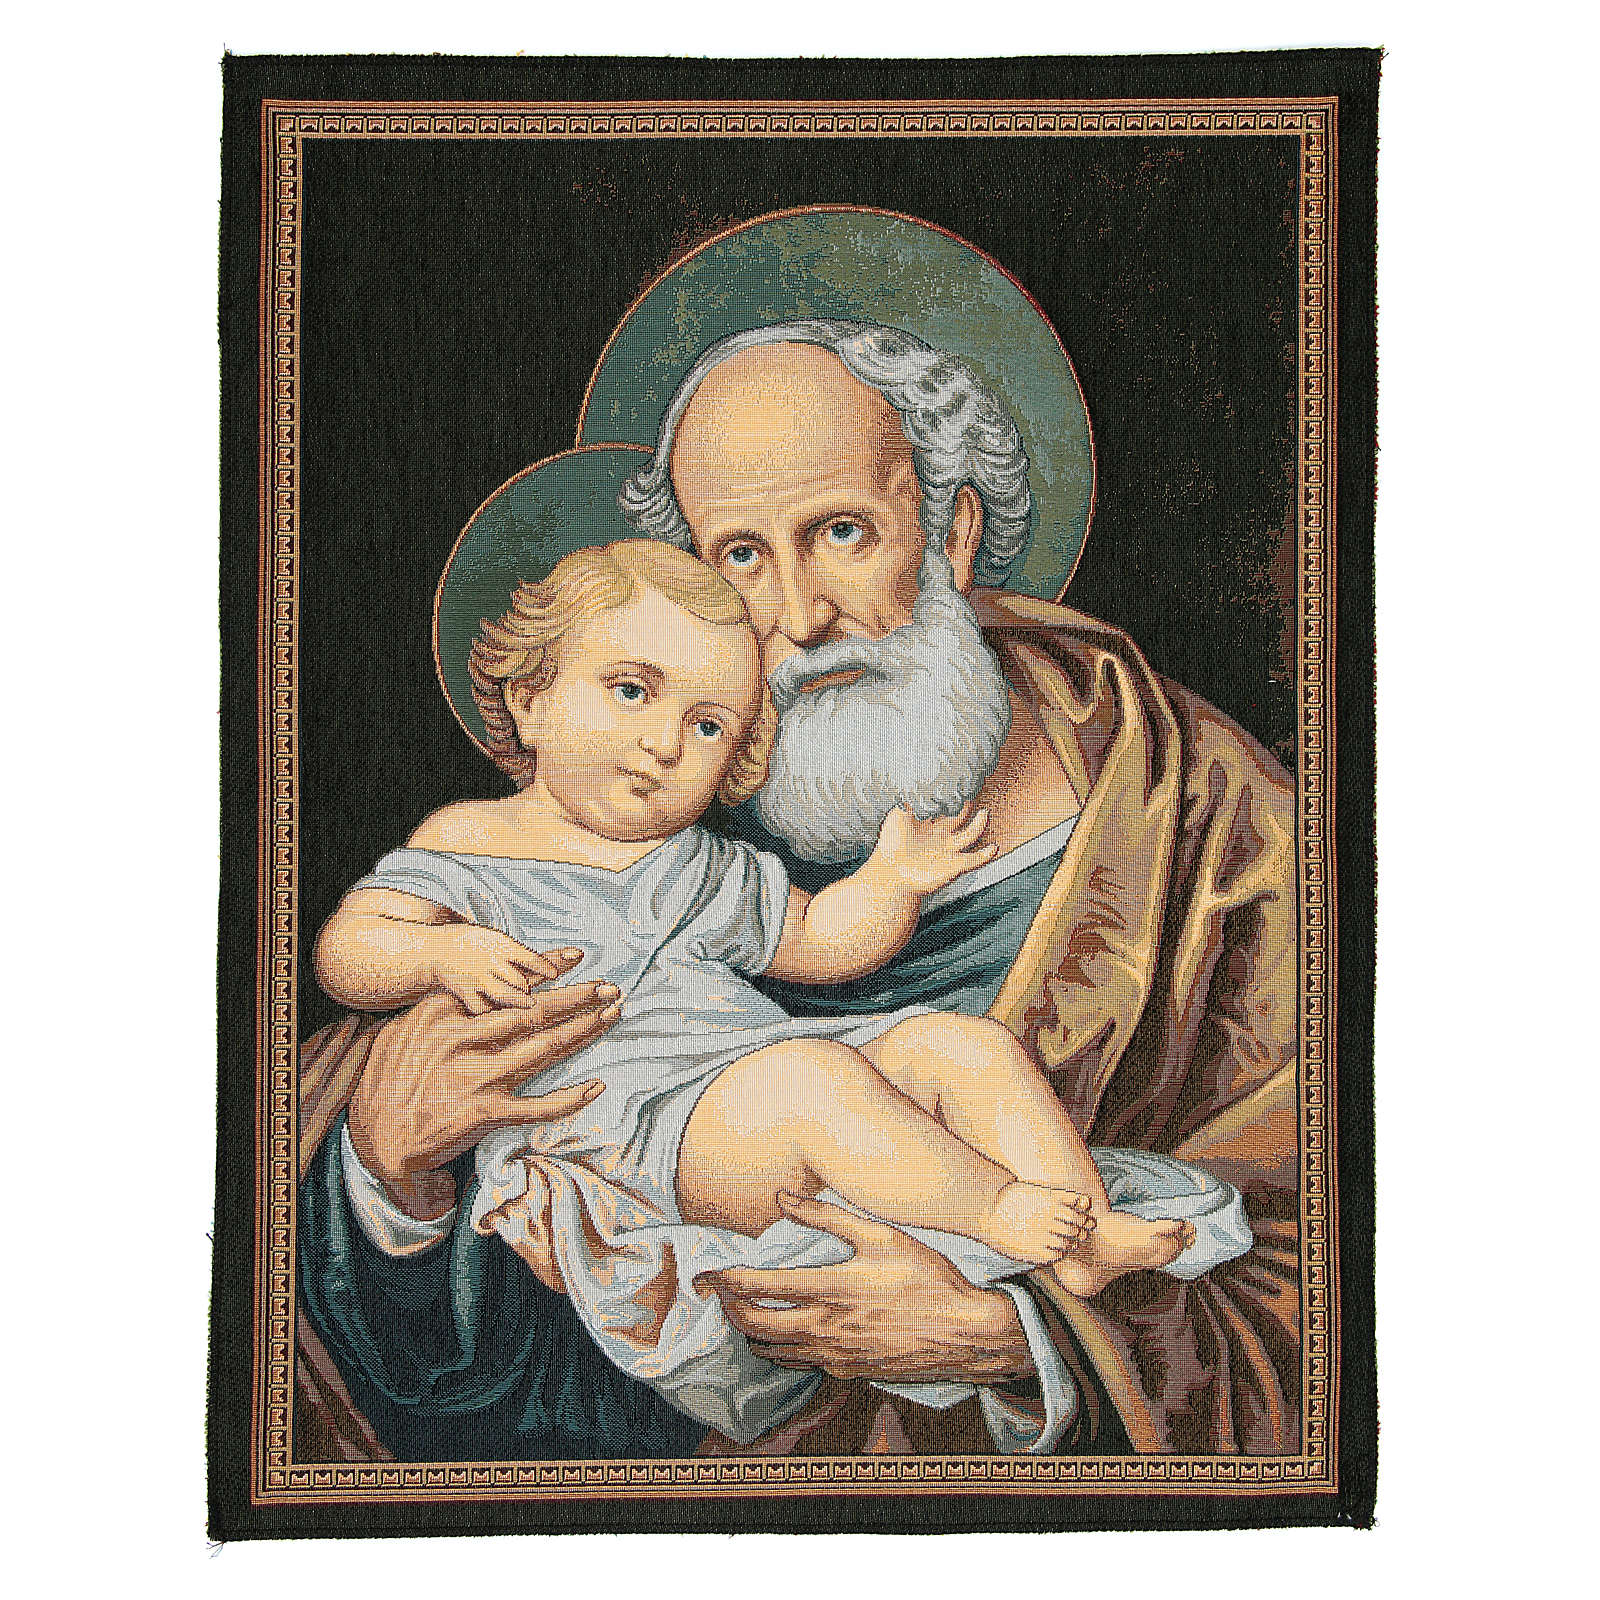 Saint Joseph tapestry measuring 65x50cm 3